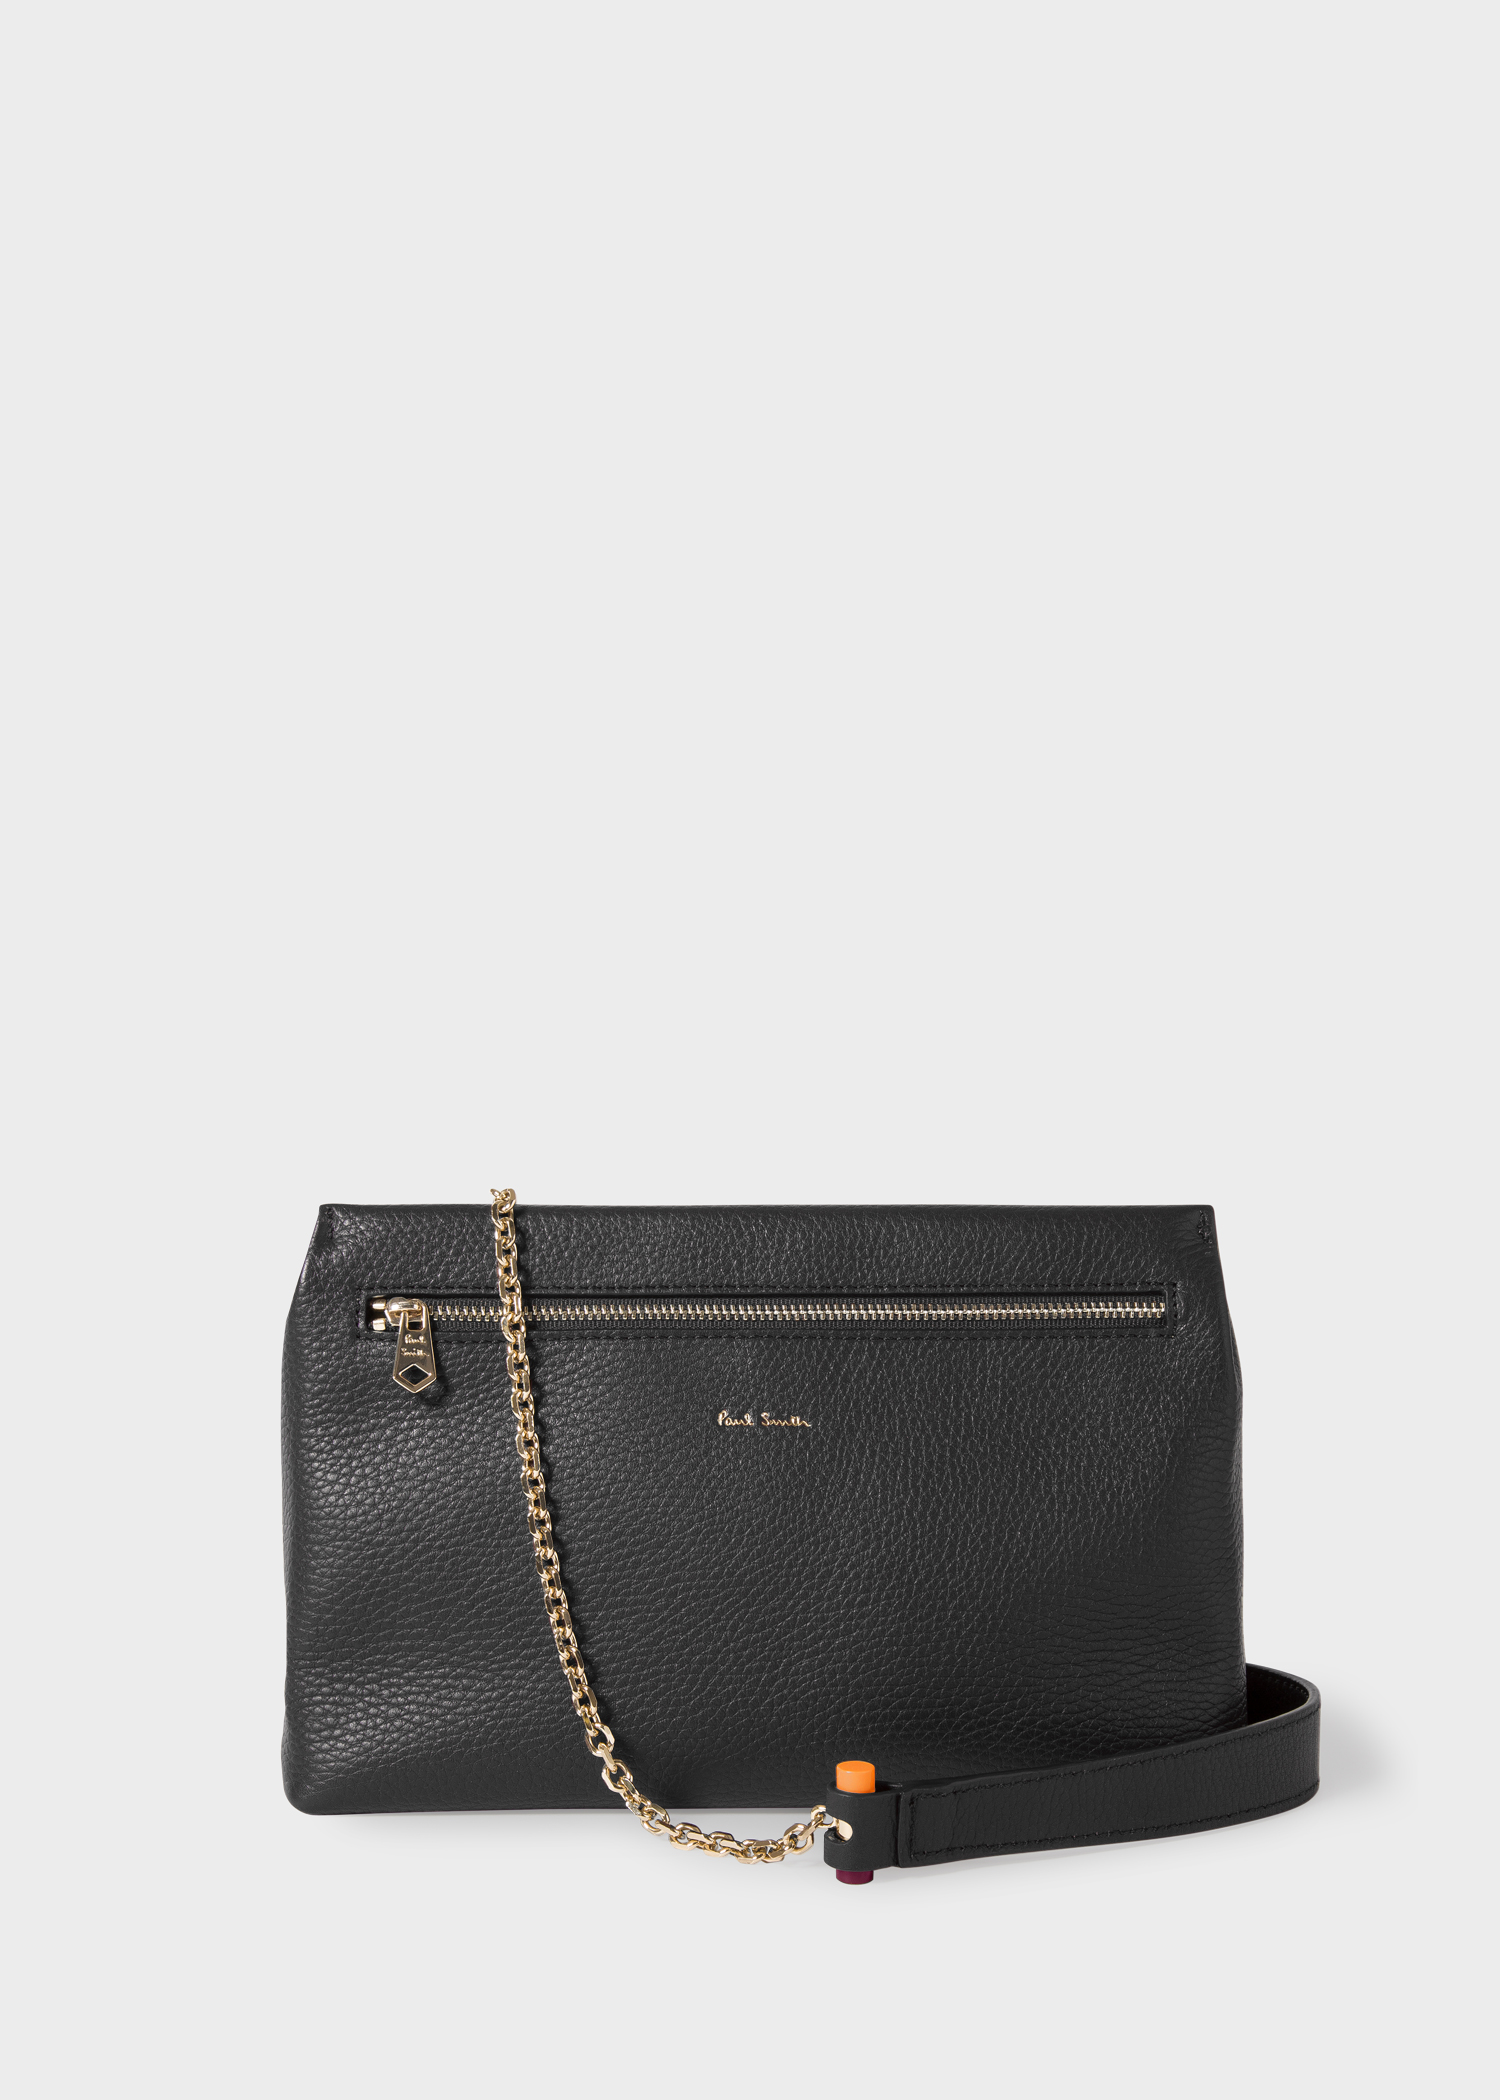 6600a030dc5 Women's Black Leather Pouch With Gold Chain